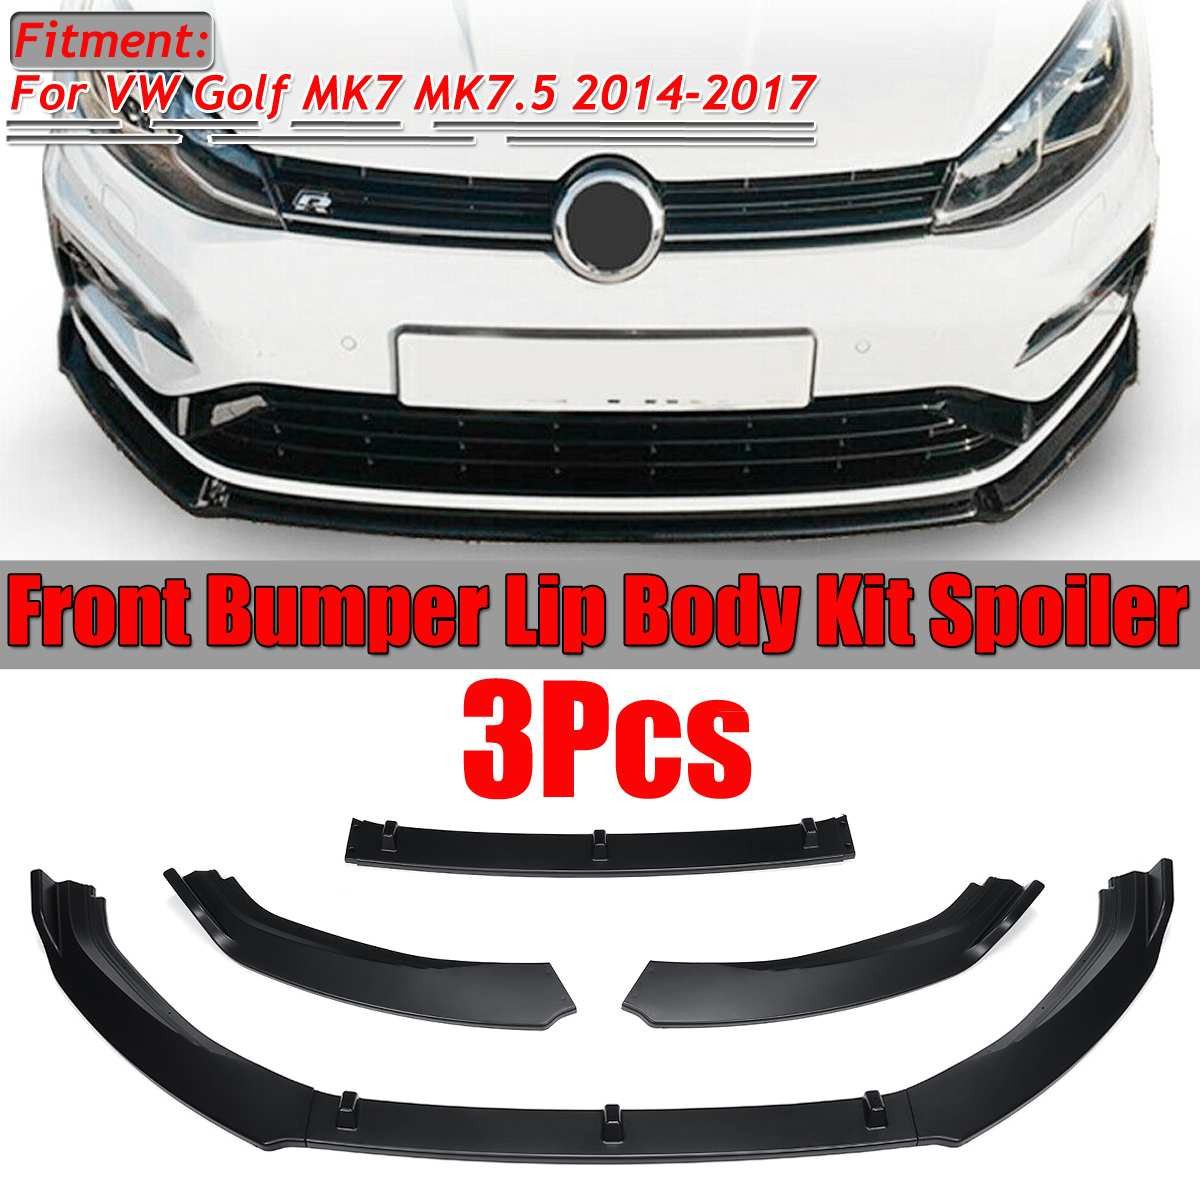 3PCS Car Front Bumper Splitter Lip Spoiler Diffuser Protector Guard Cover Trim For VW For Golf MK7 MK7.5 2014 2015 2016 2017